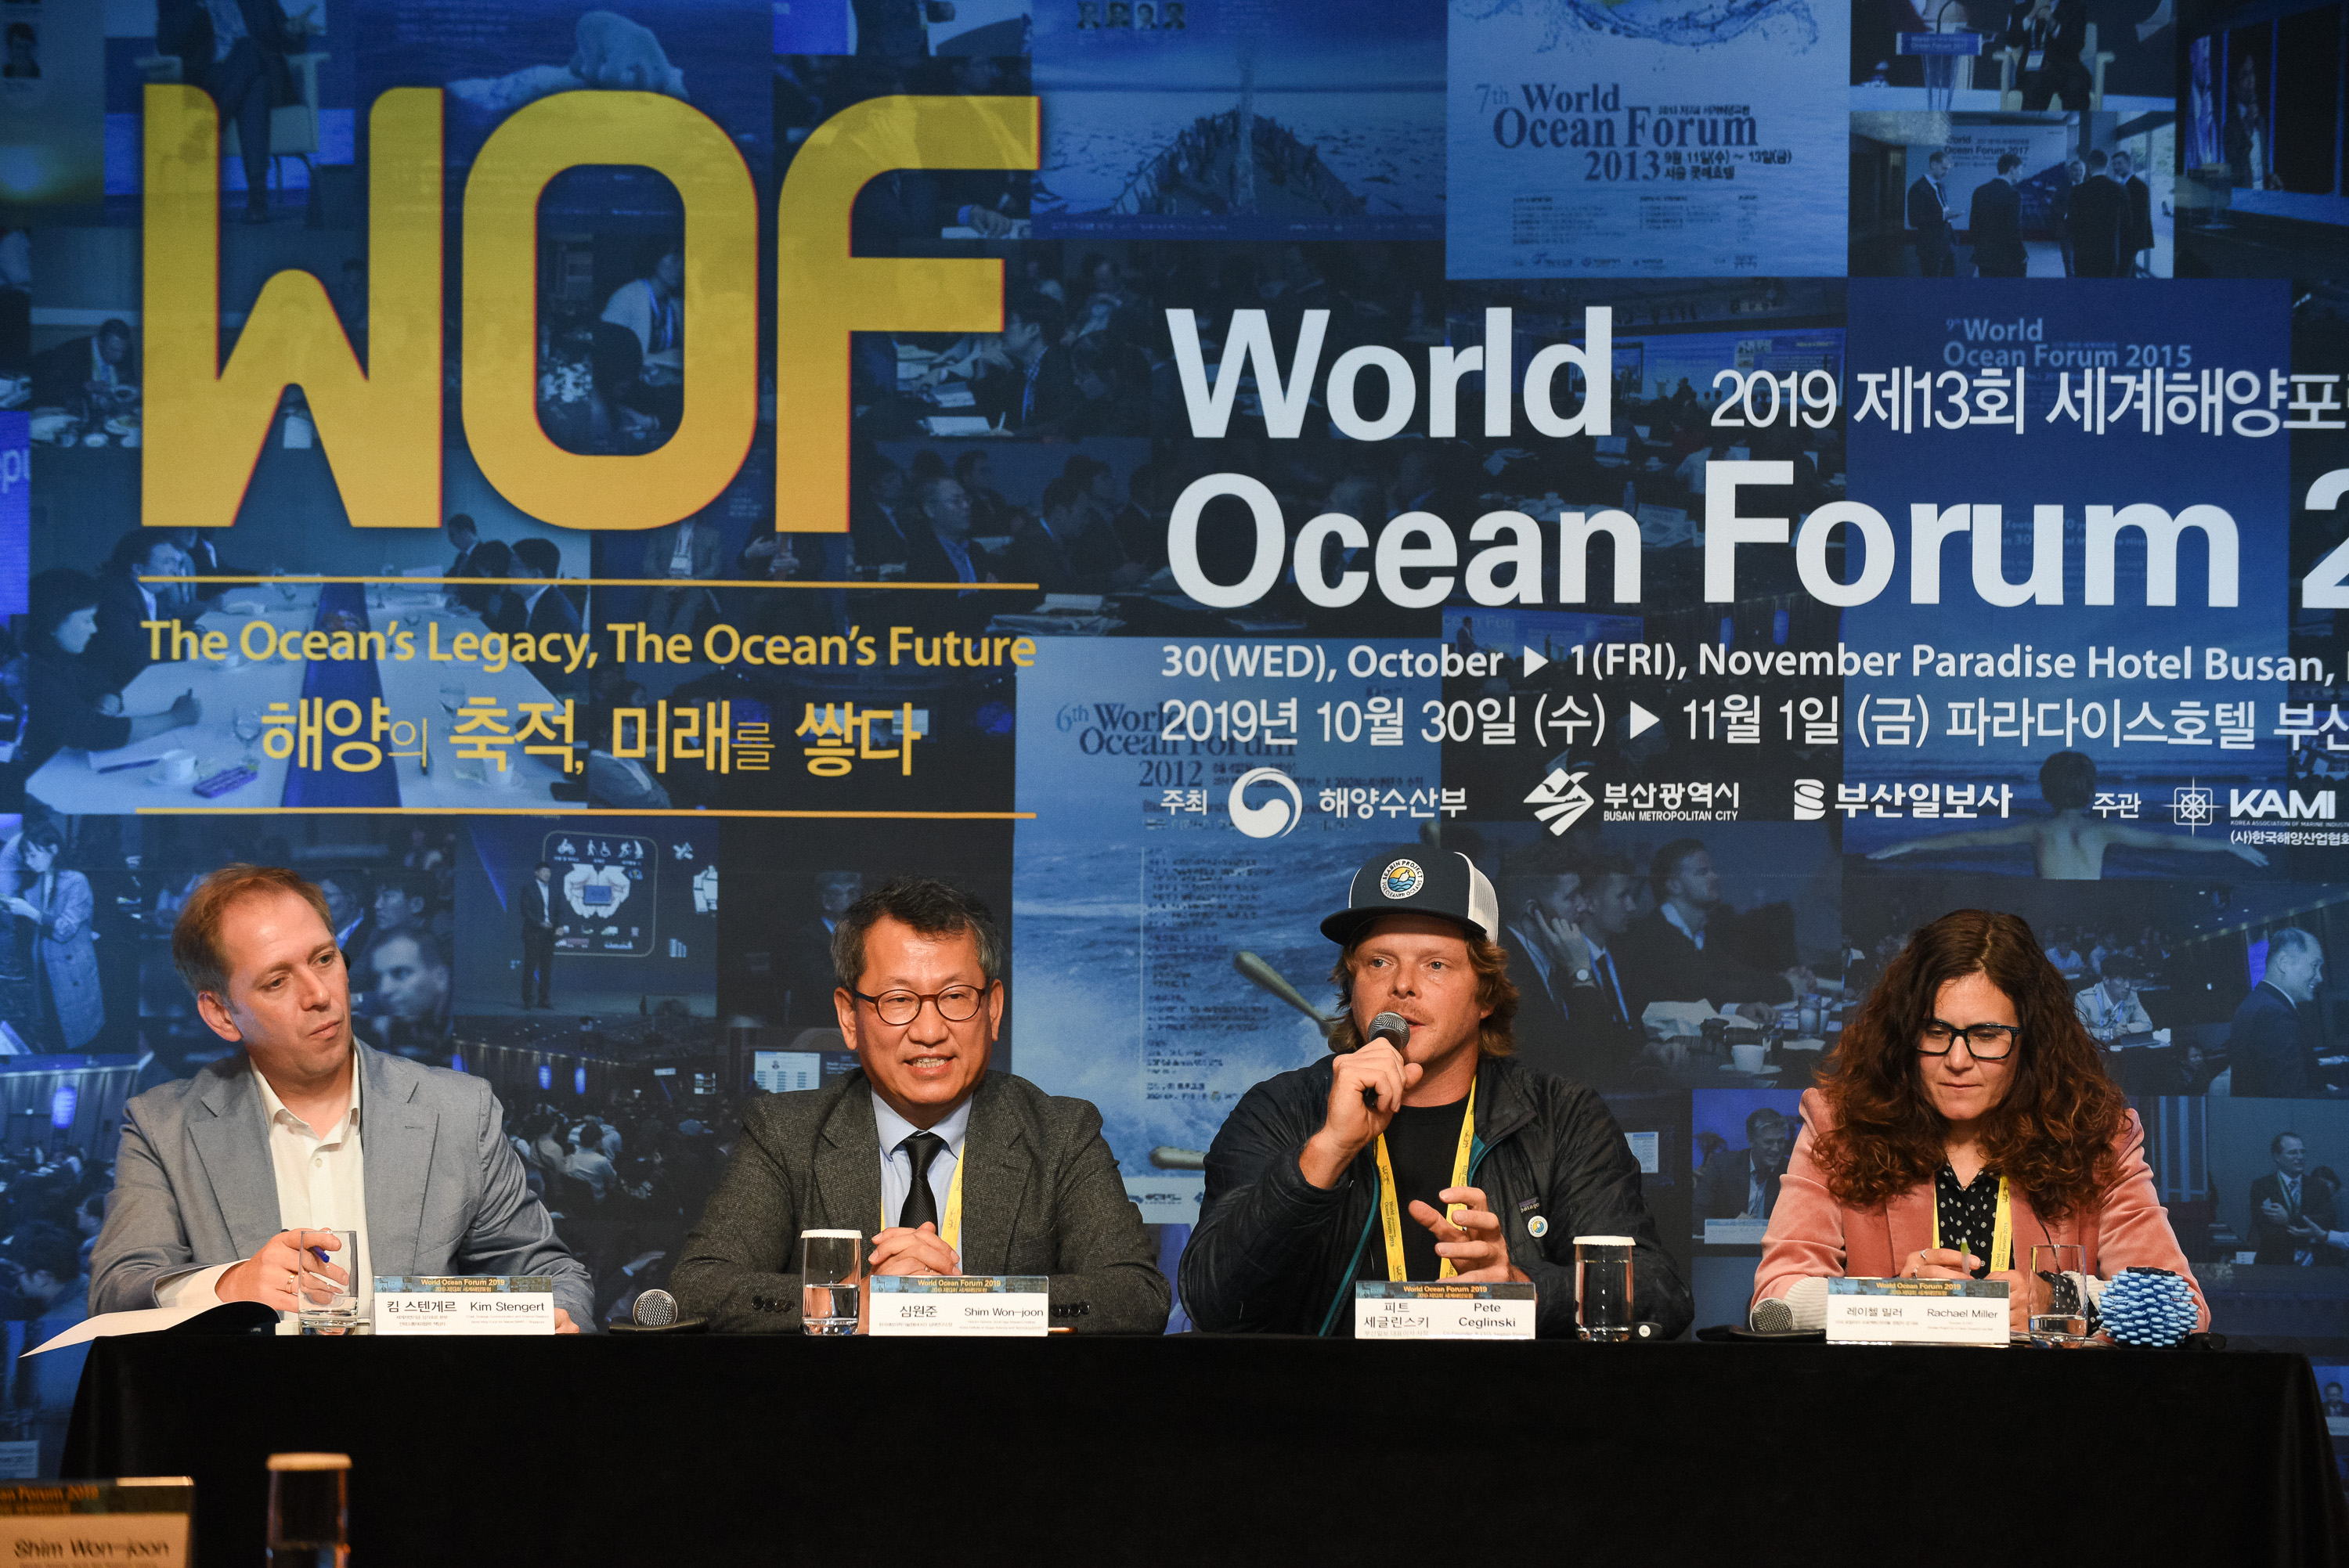 [WOF 2019] Day 3 / Special Session 4. Plastic Invasion of our Oceans Thumbnail Image